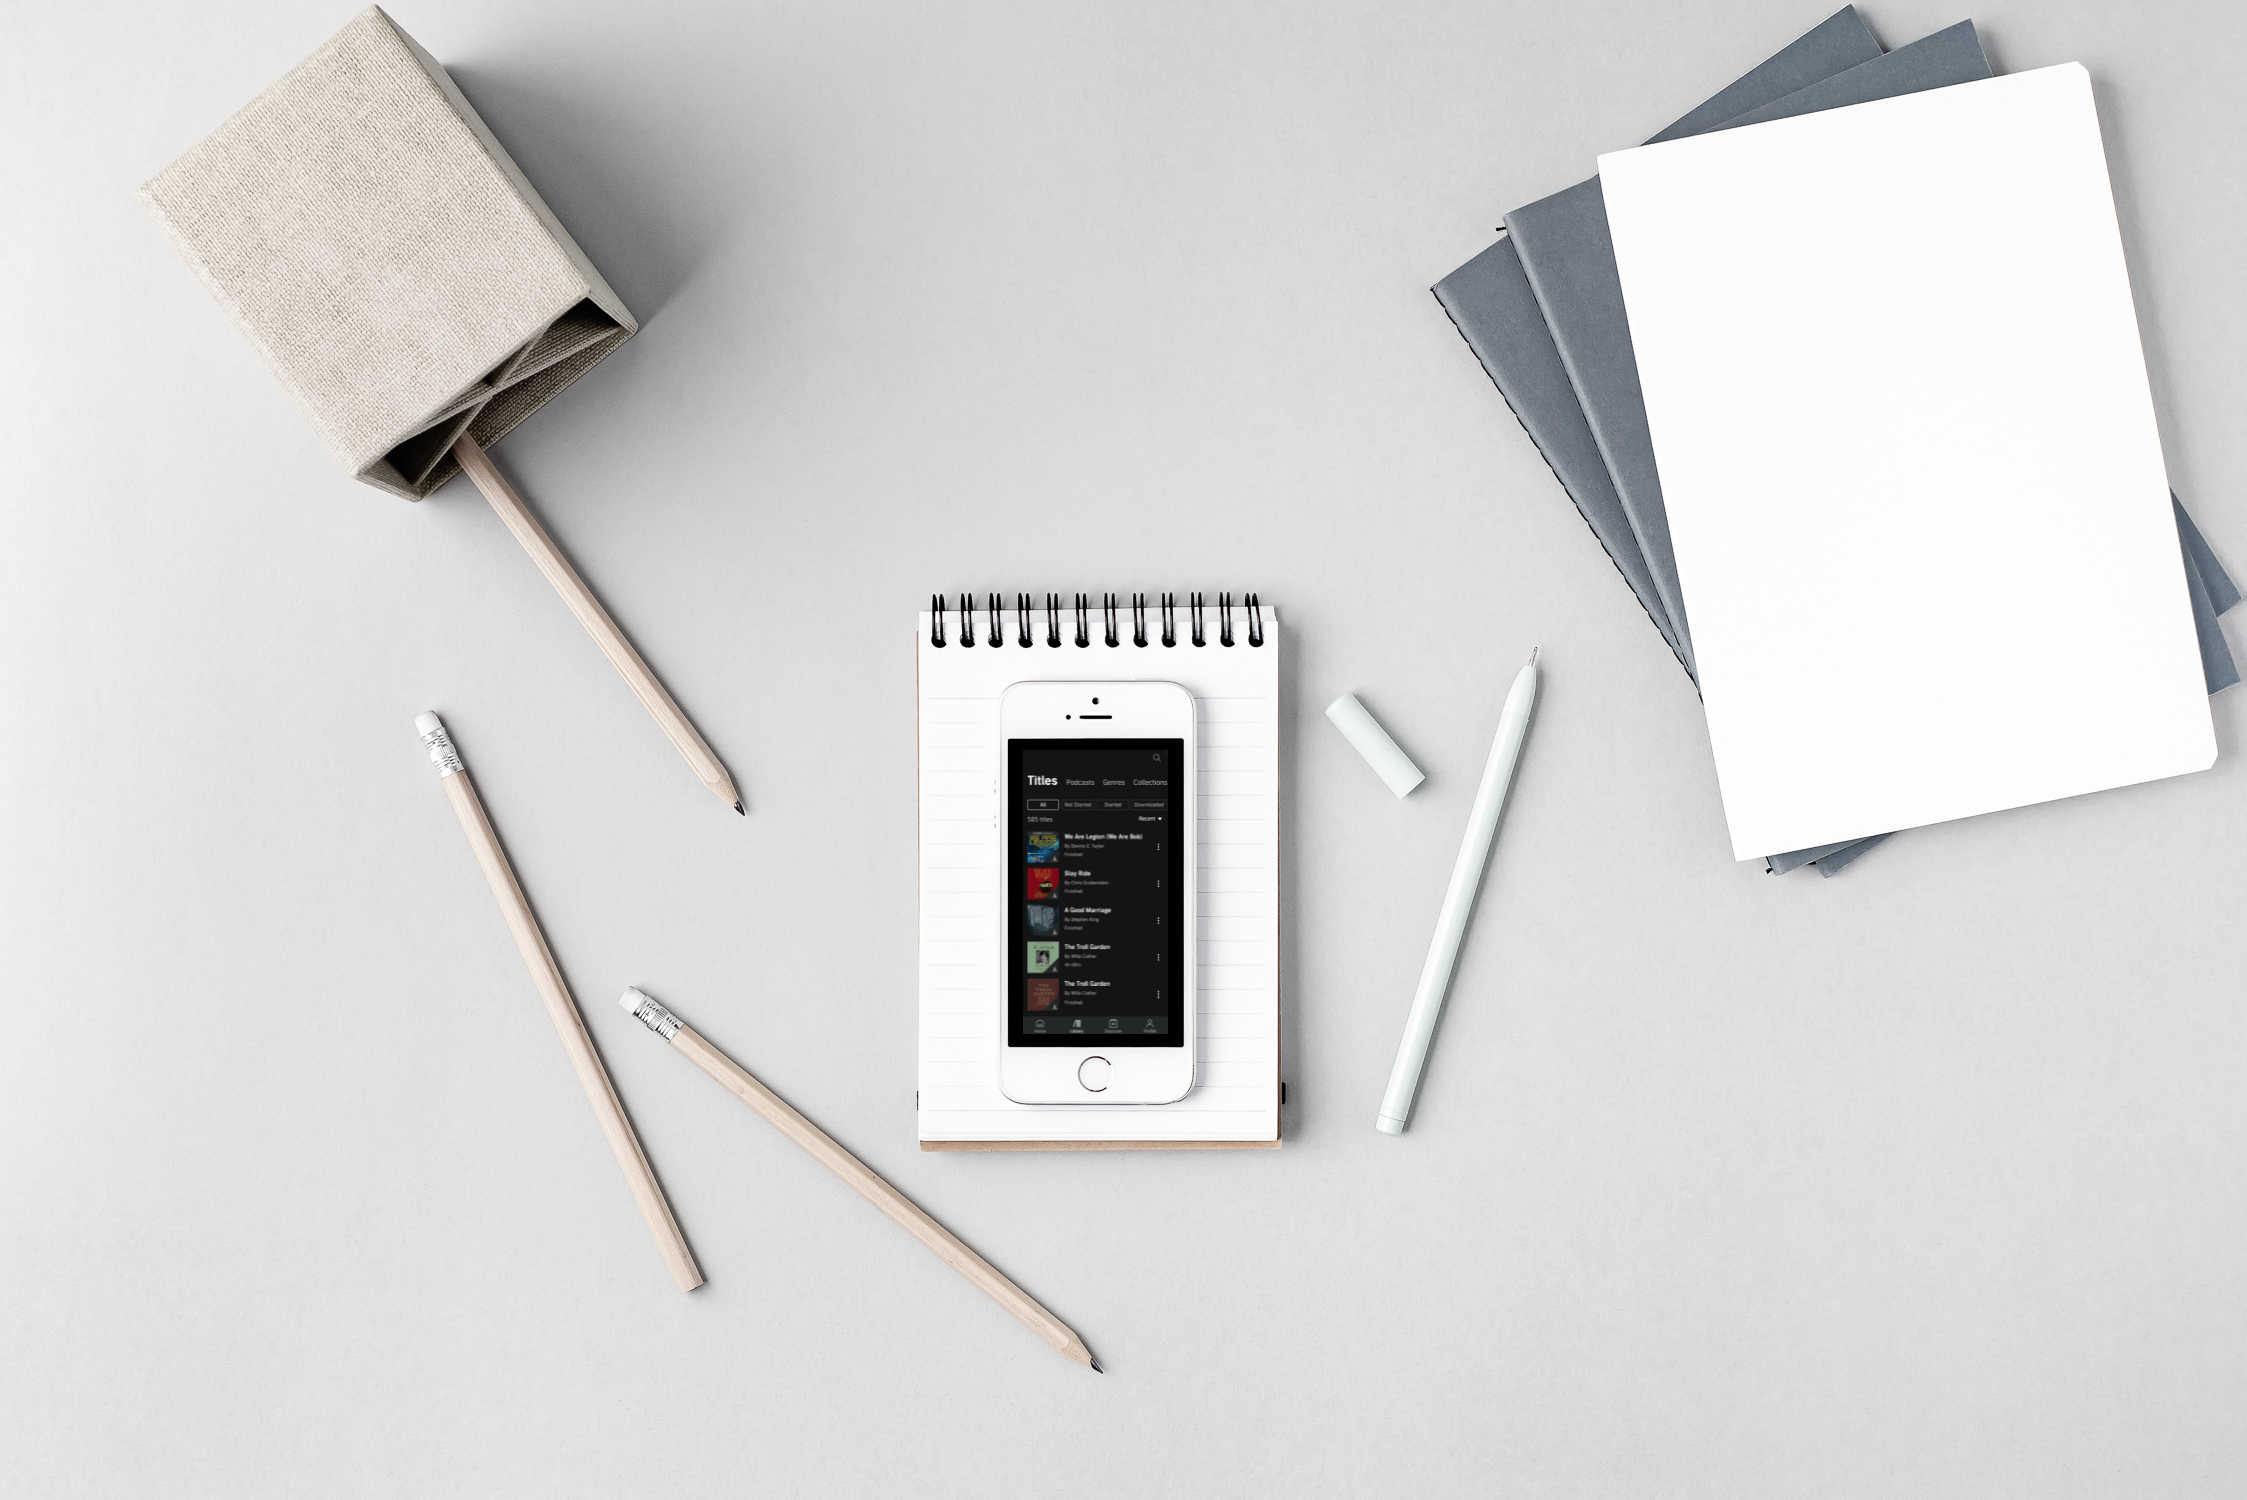 flat lay of smart phone, pencils, and notebooks